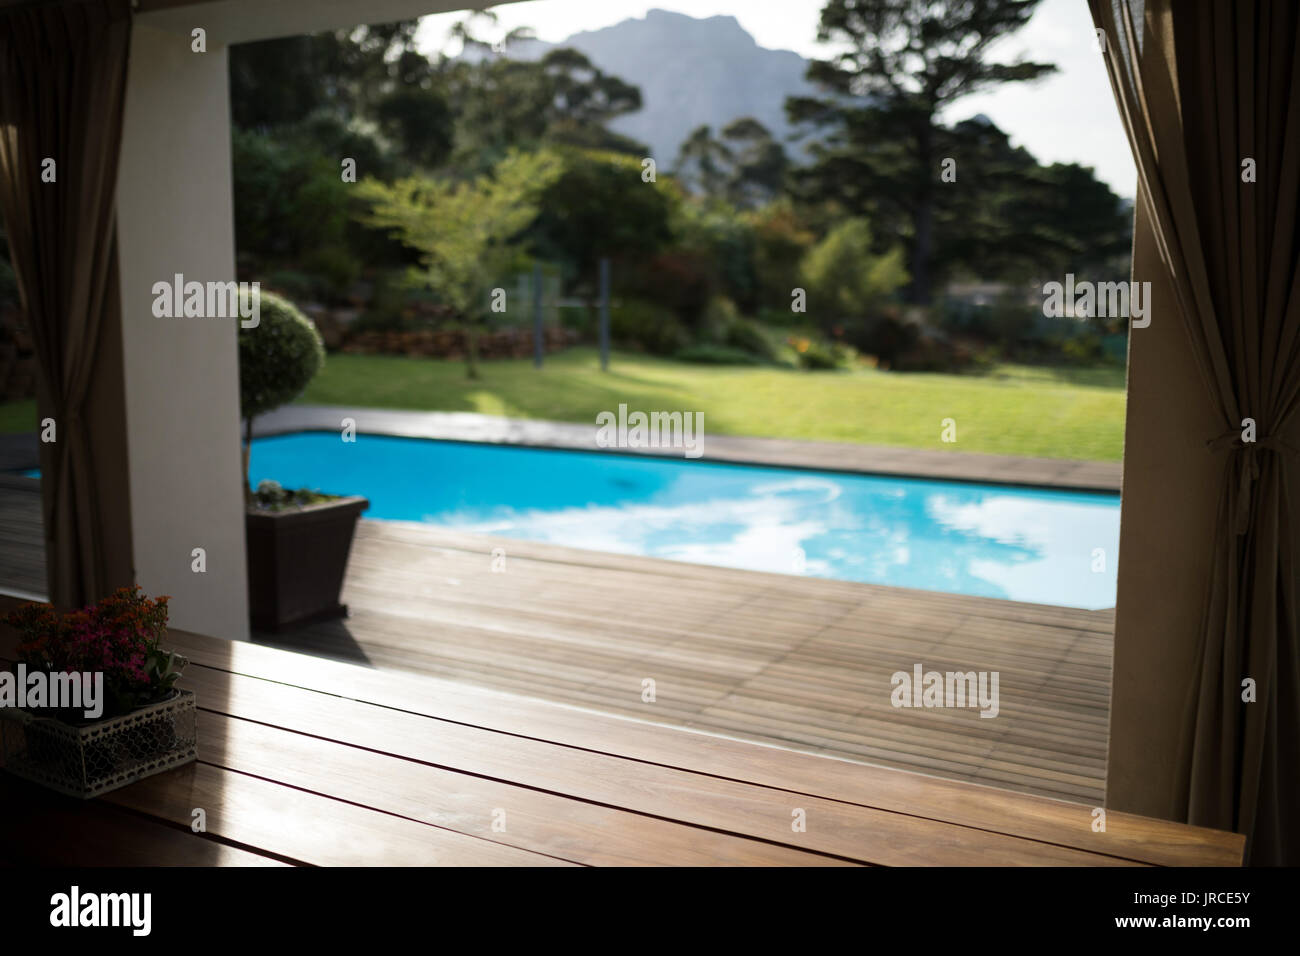 Swimming pool in the front yard of house on a sunny day - Stock Image